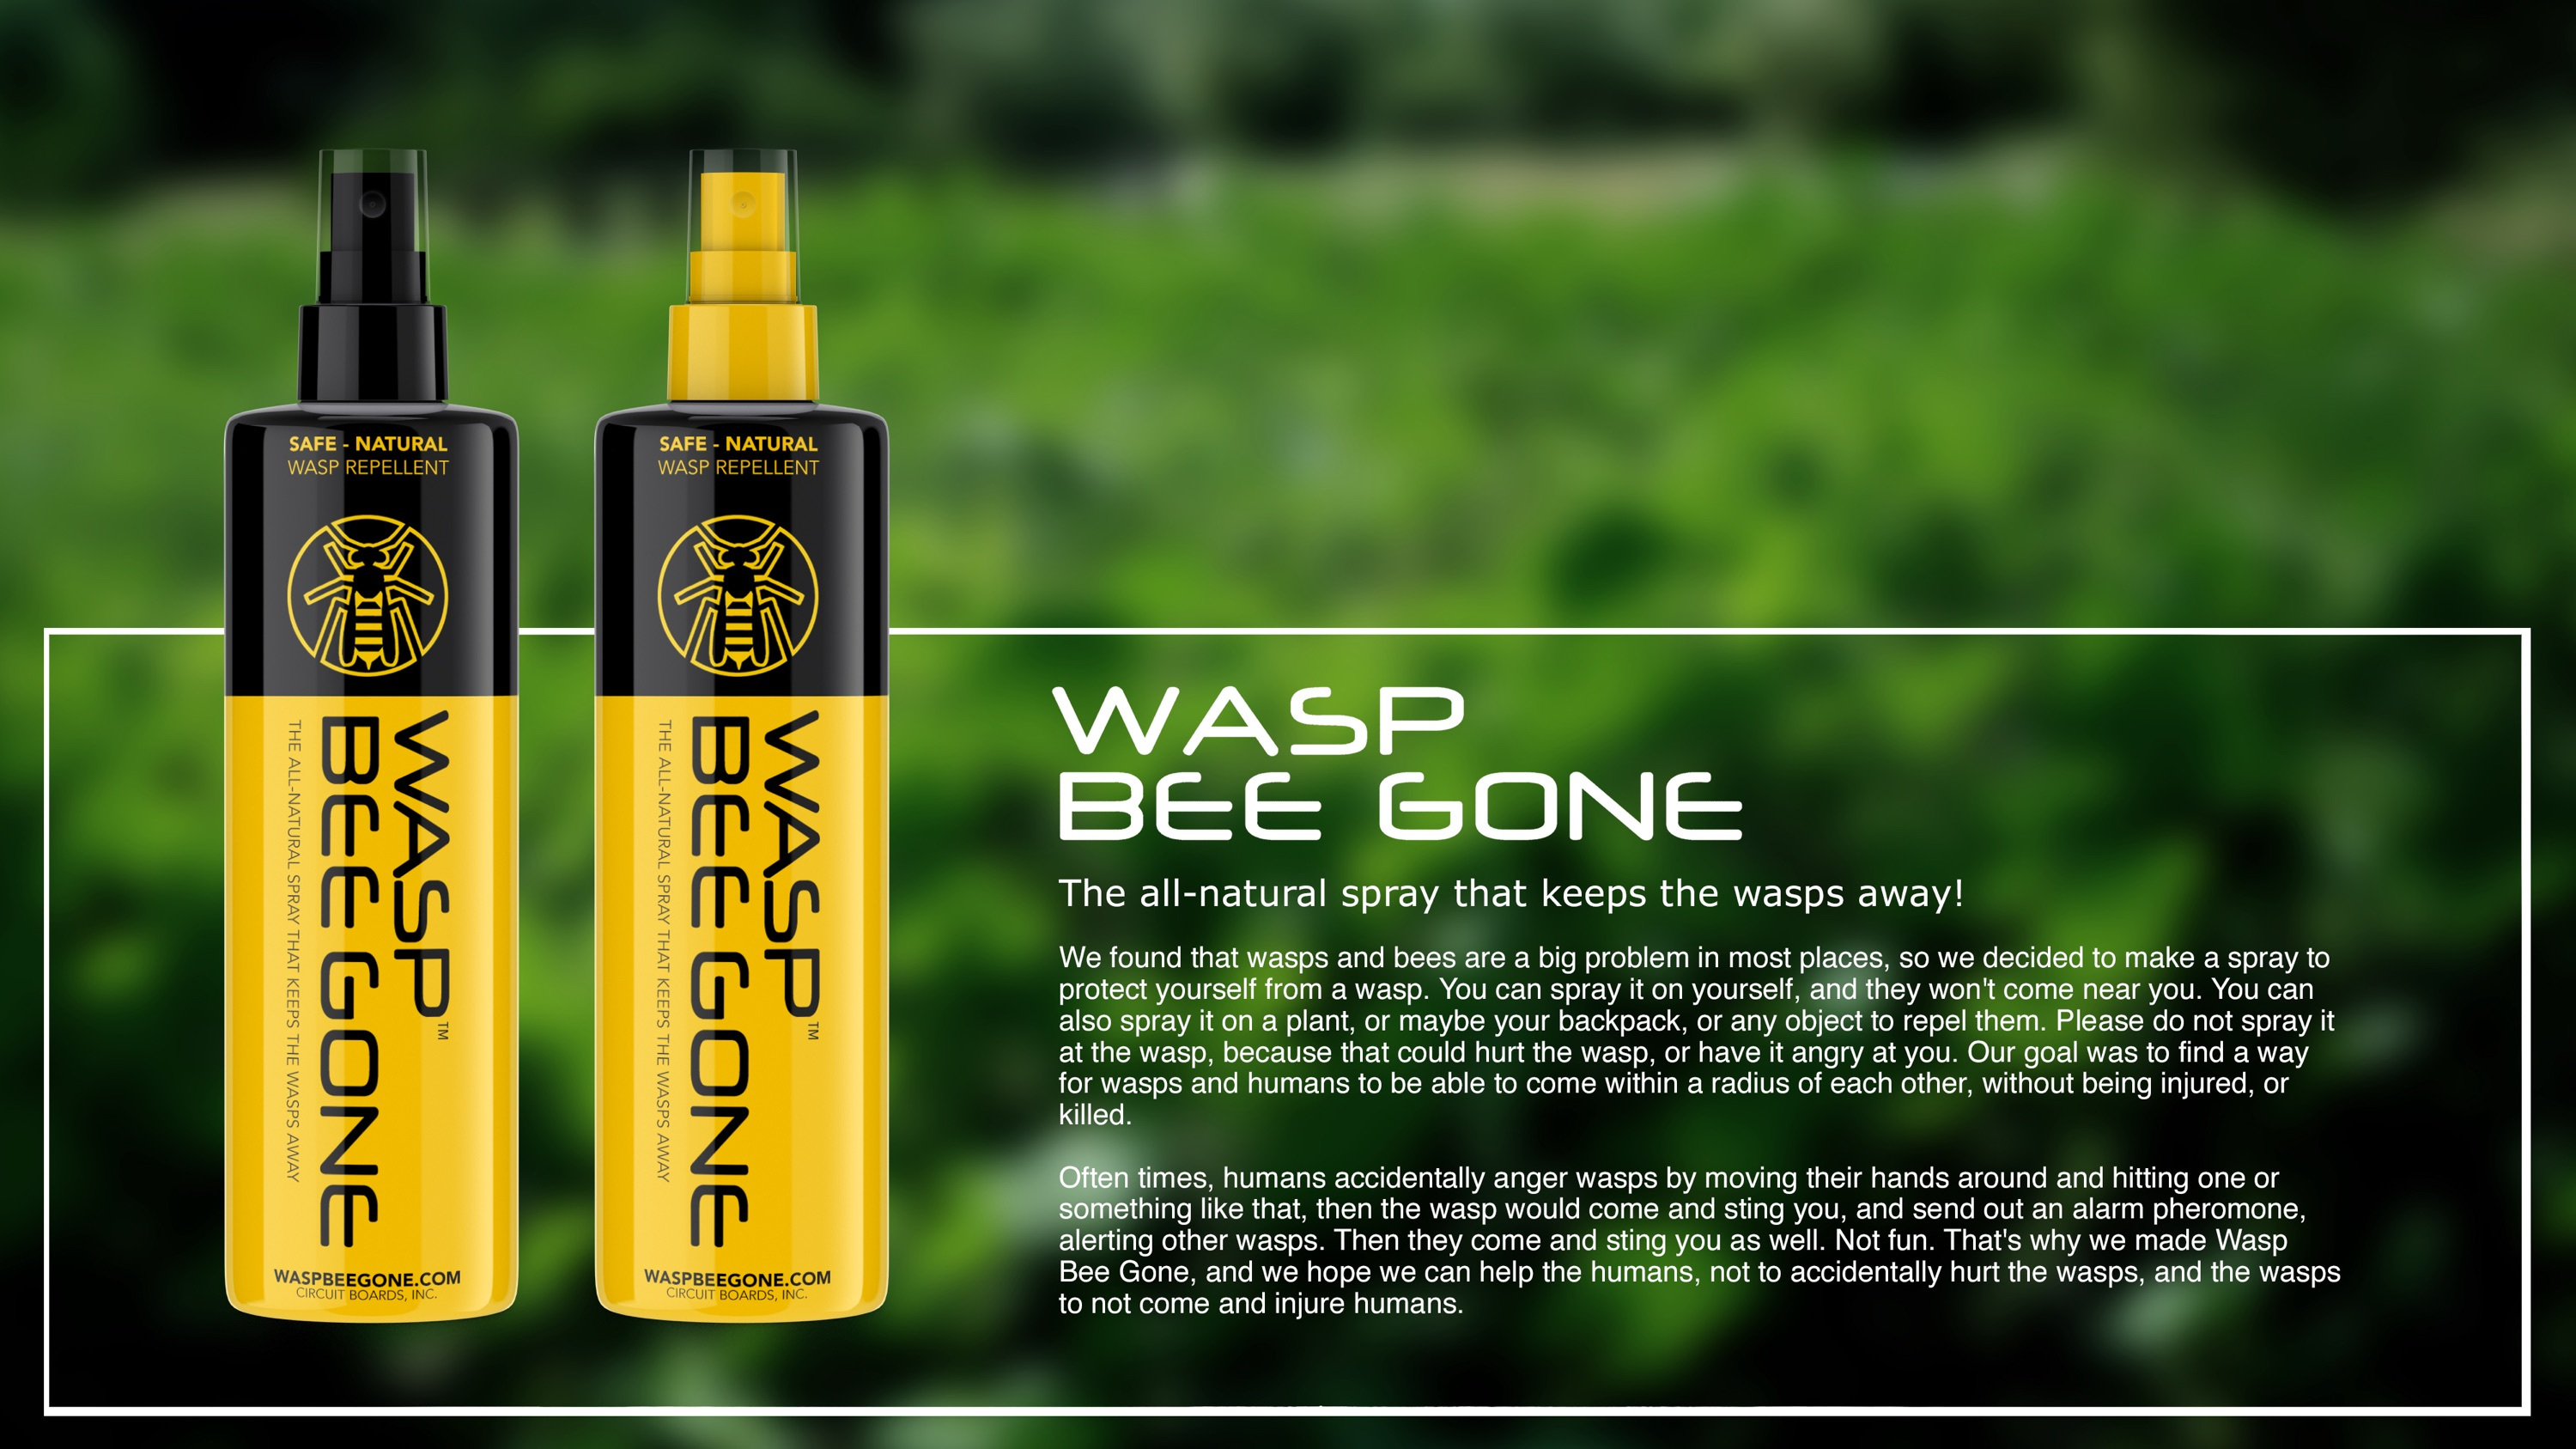 Wasp Bee Gone wasp repellent spray is currently in the testing phase. Our product's availability is expected to be Summer 2017.